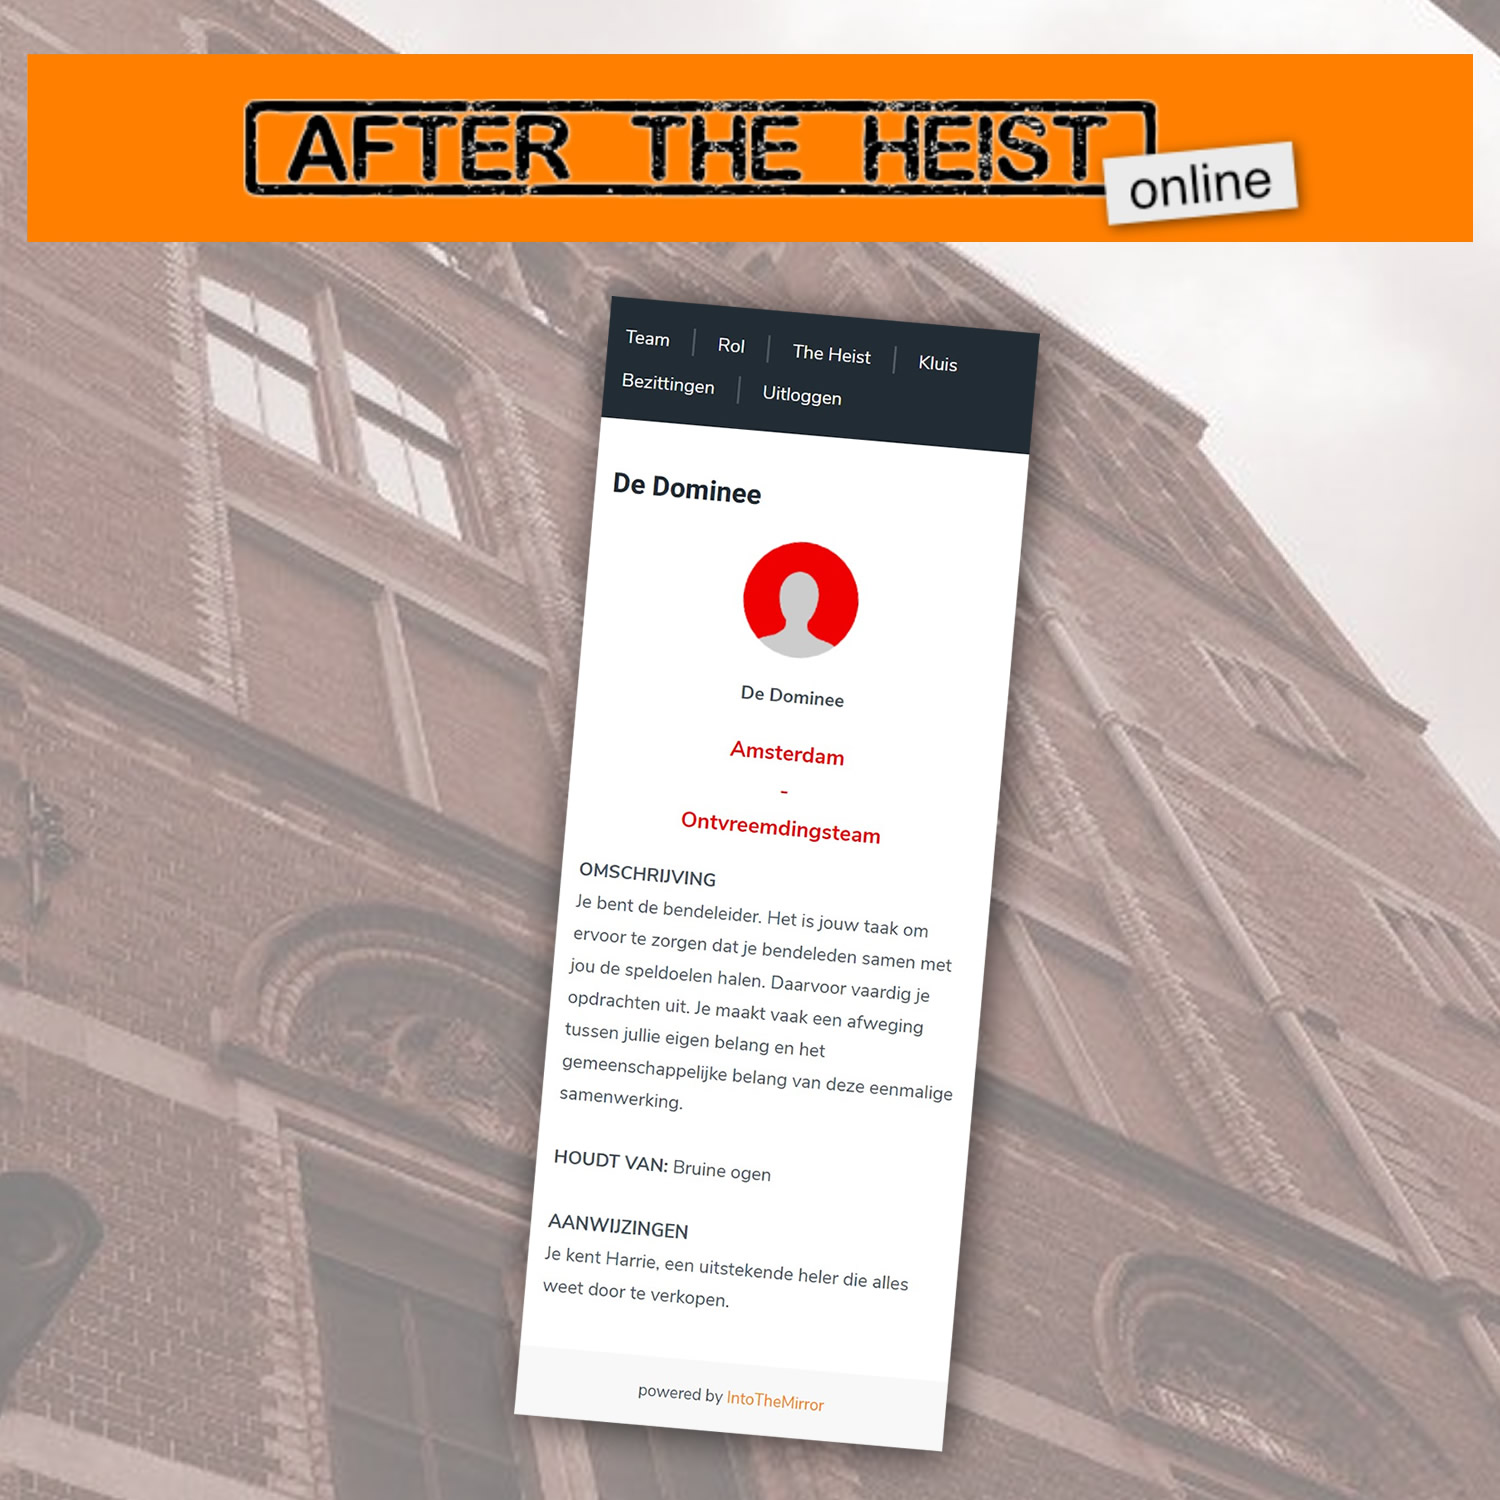 Online real life escape game: After The Heist